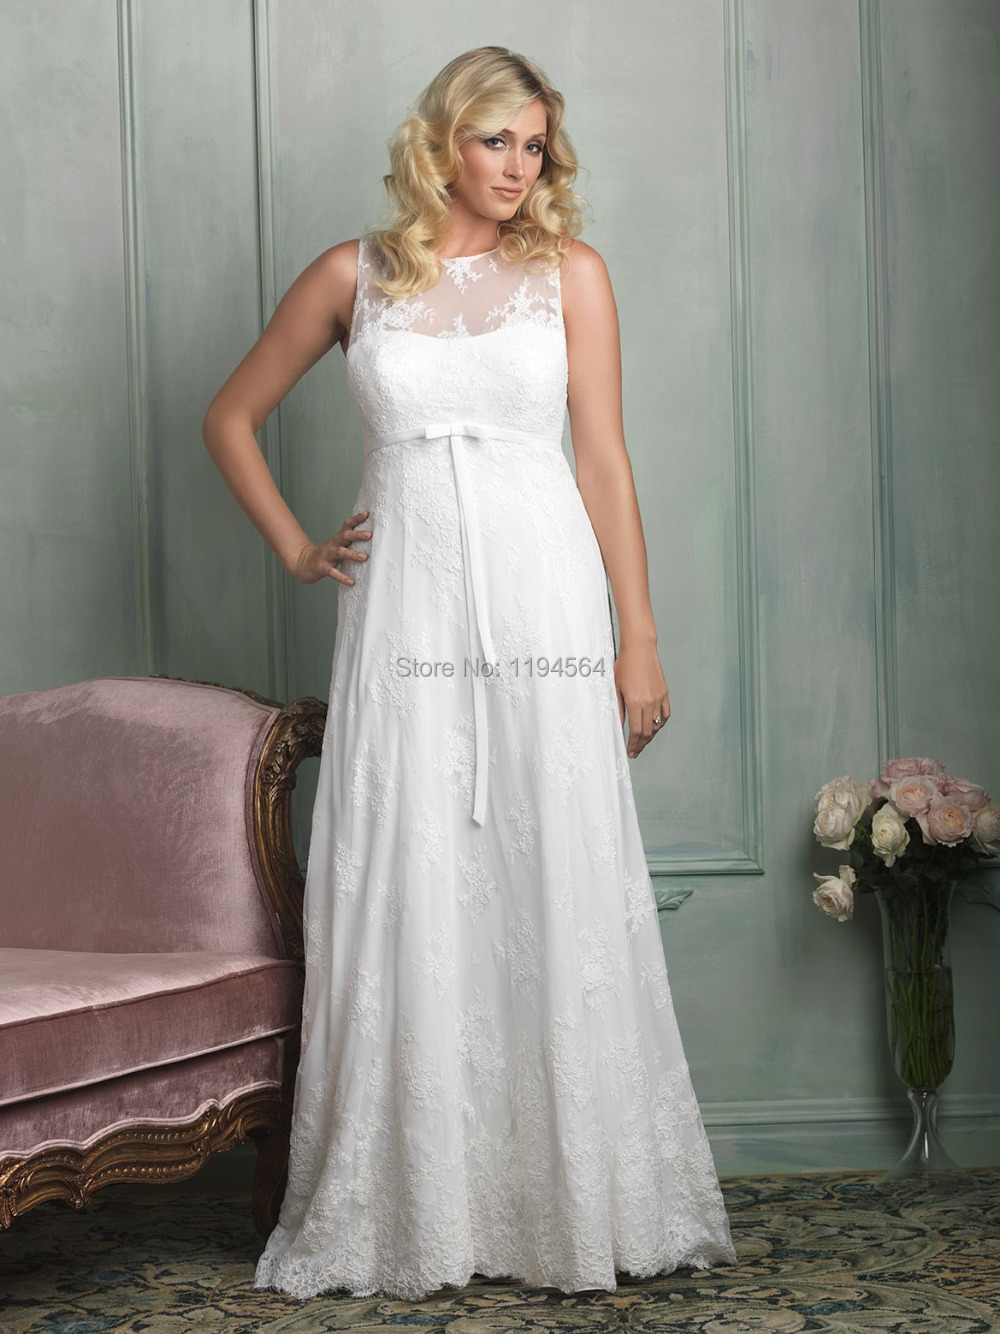 Compare Prices on Lace High Neck Wedding Dress- Online Shopping ...